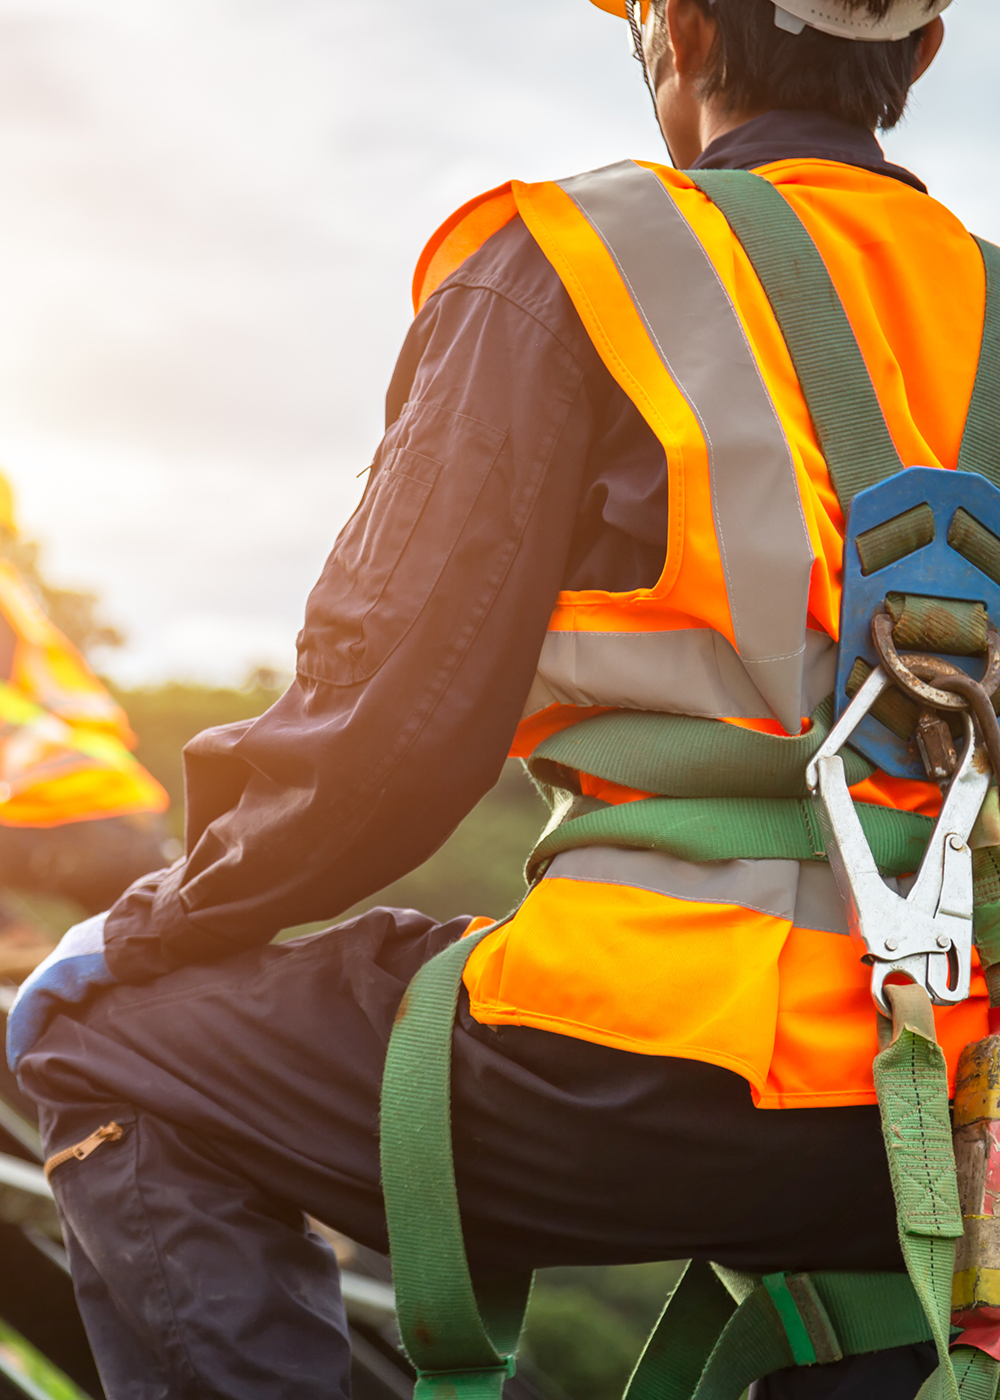 Construction worker in orange safety vest and green harness while on the roof of a building.